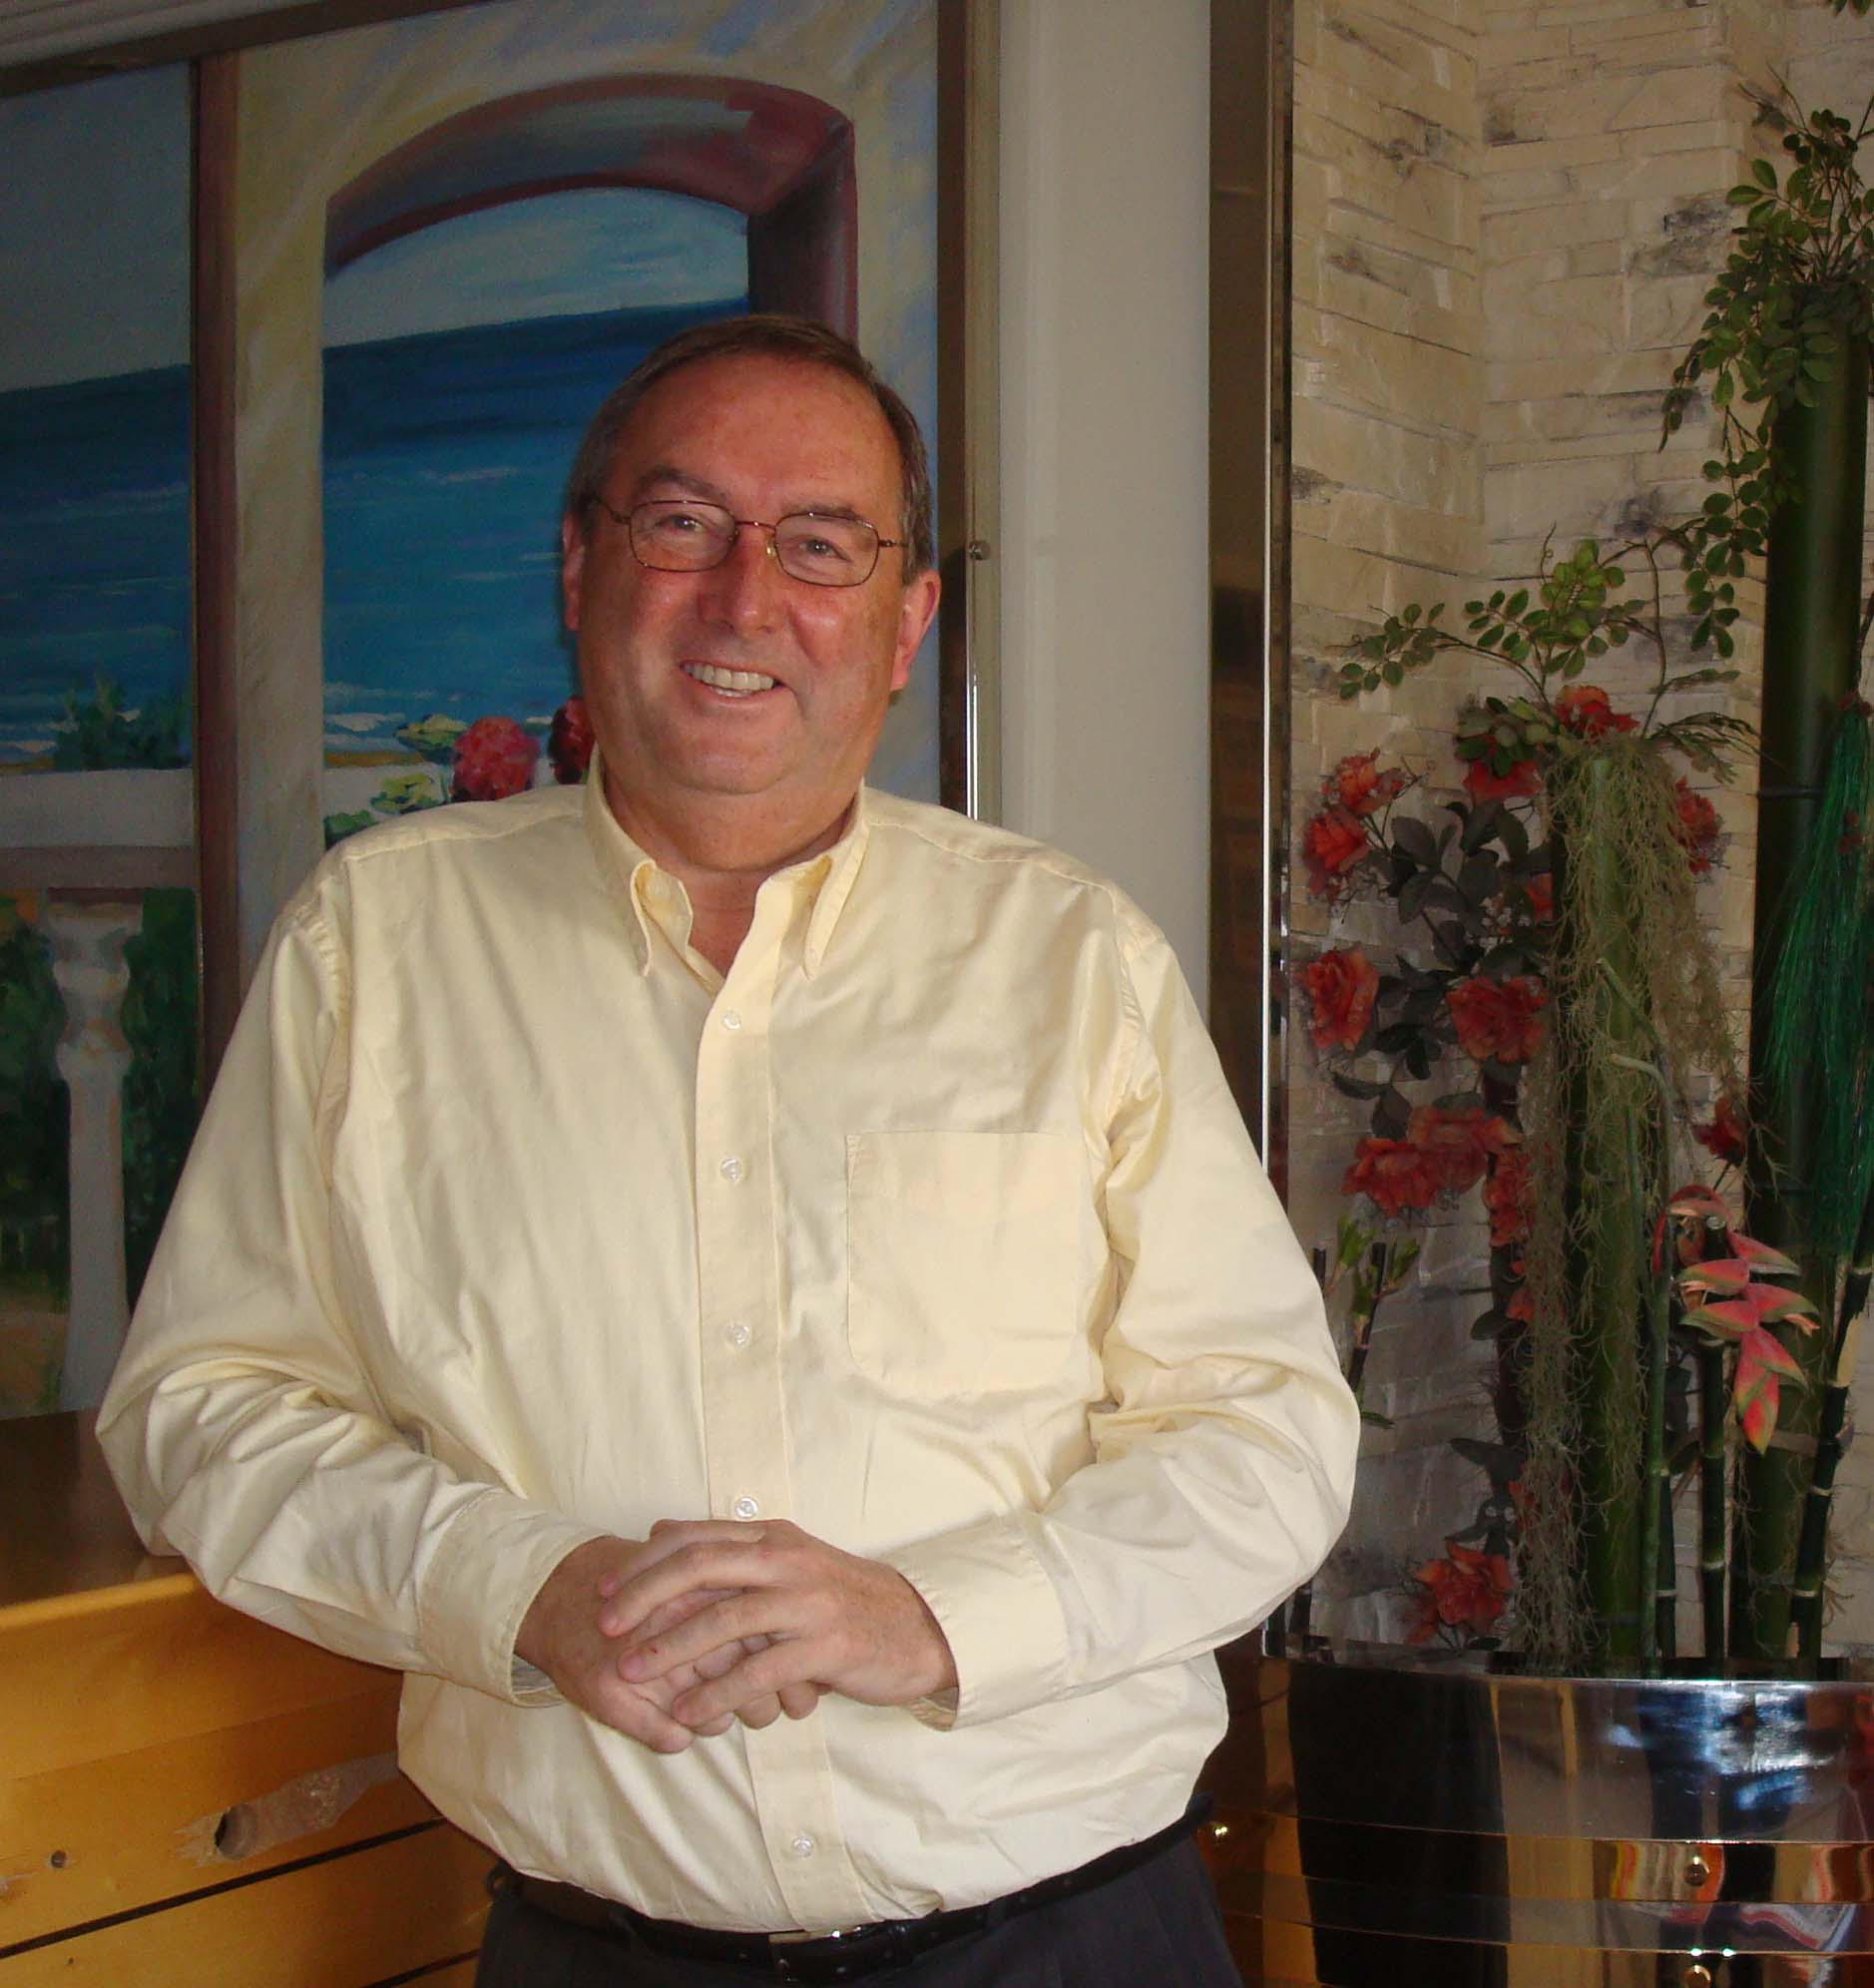 Local business group the latest to slam Orihuela council